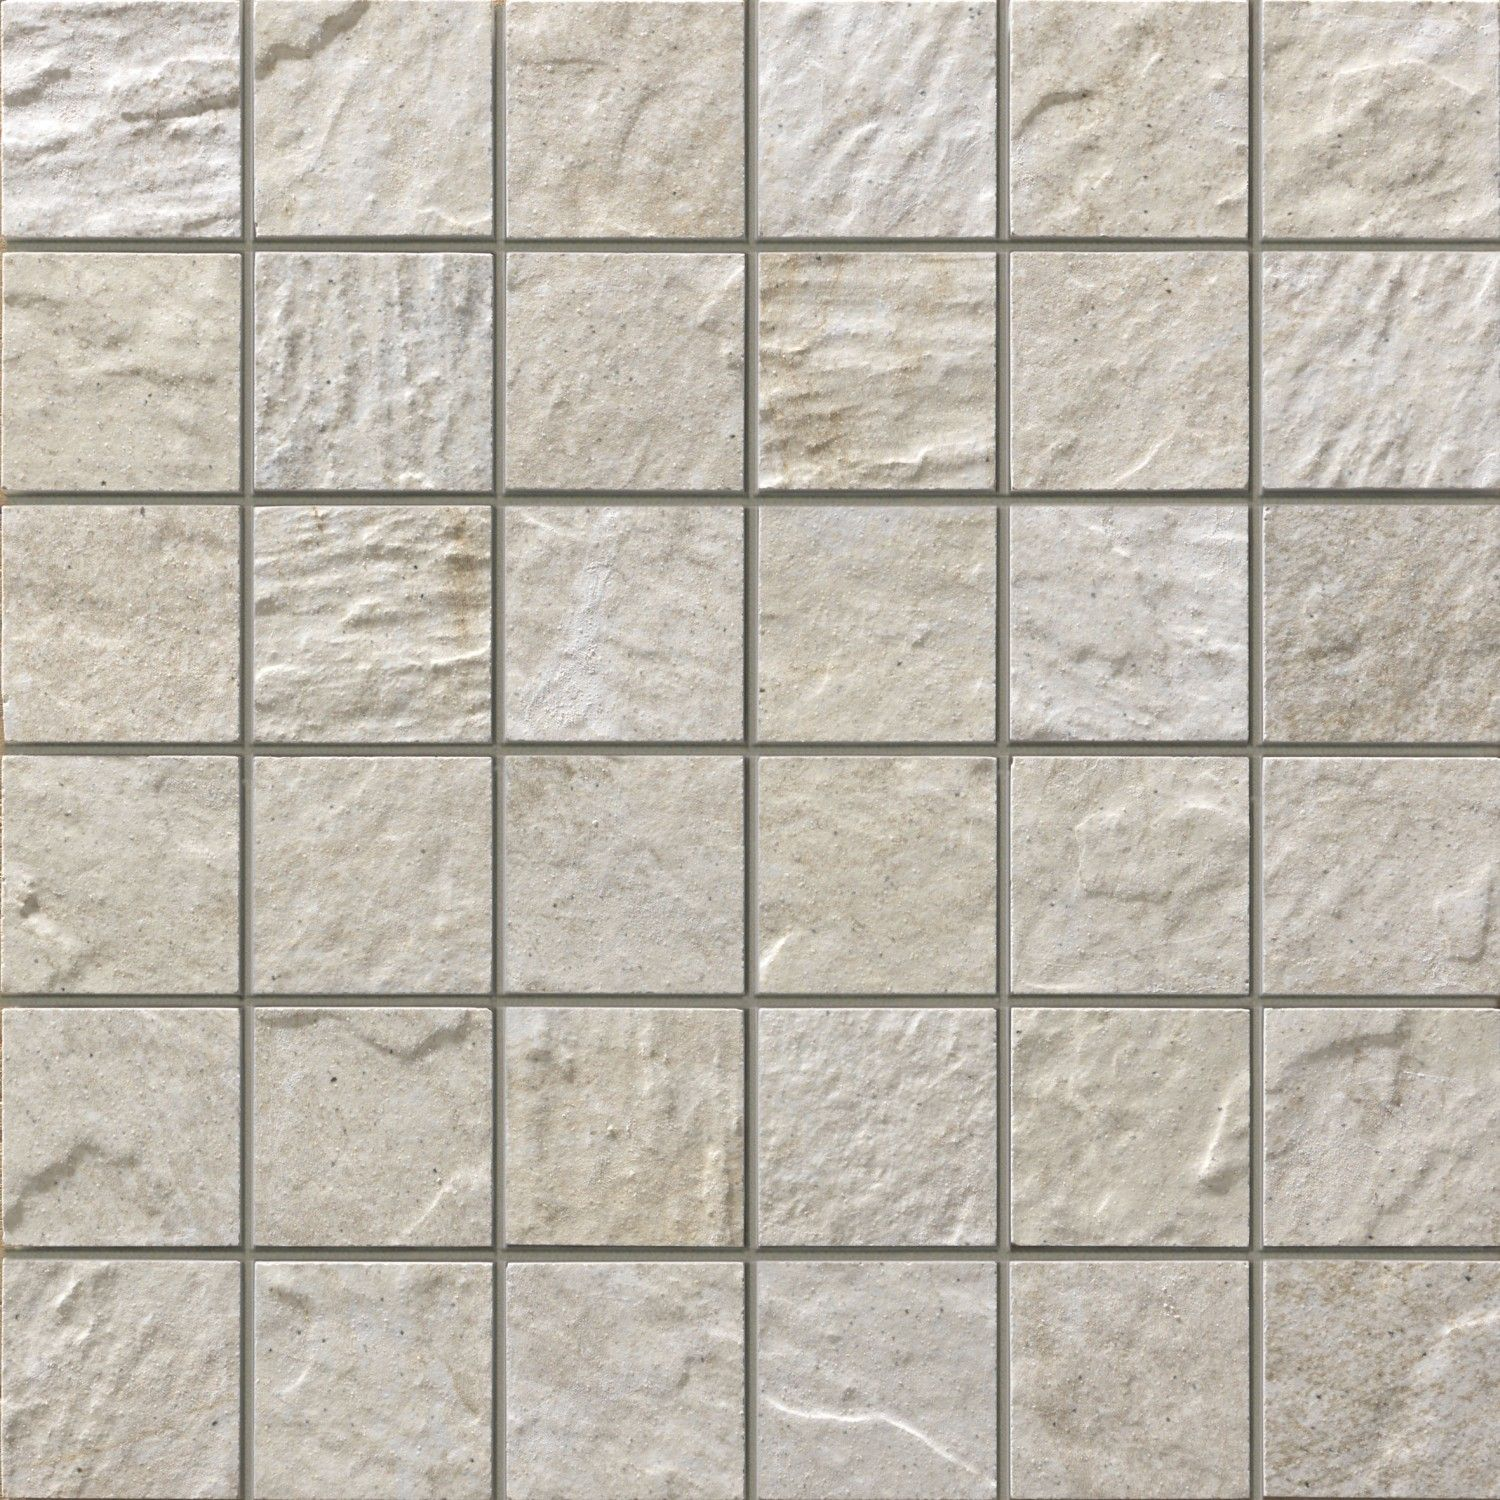 Kitchen Tiles Design Texture: Image For Kitchen Wall Tile Texture